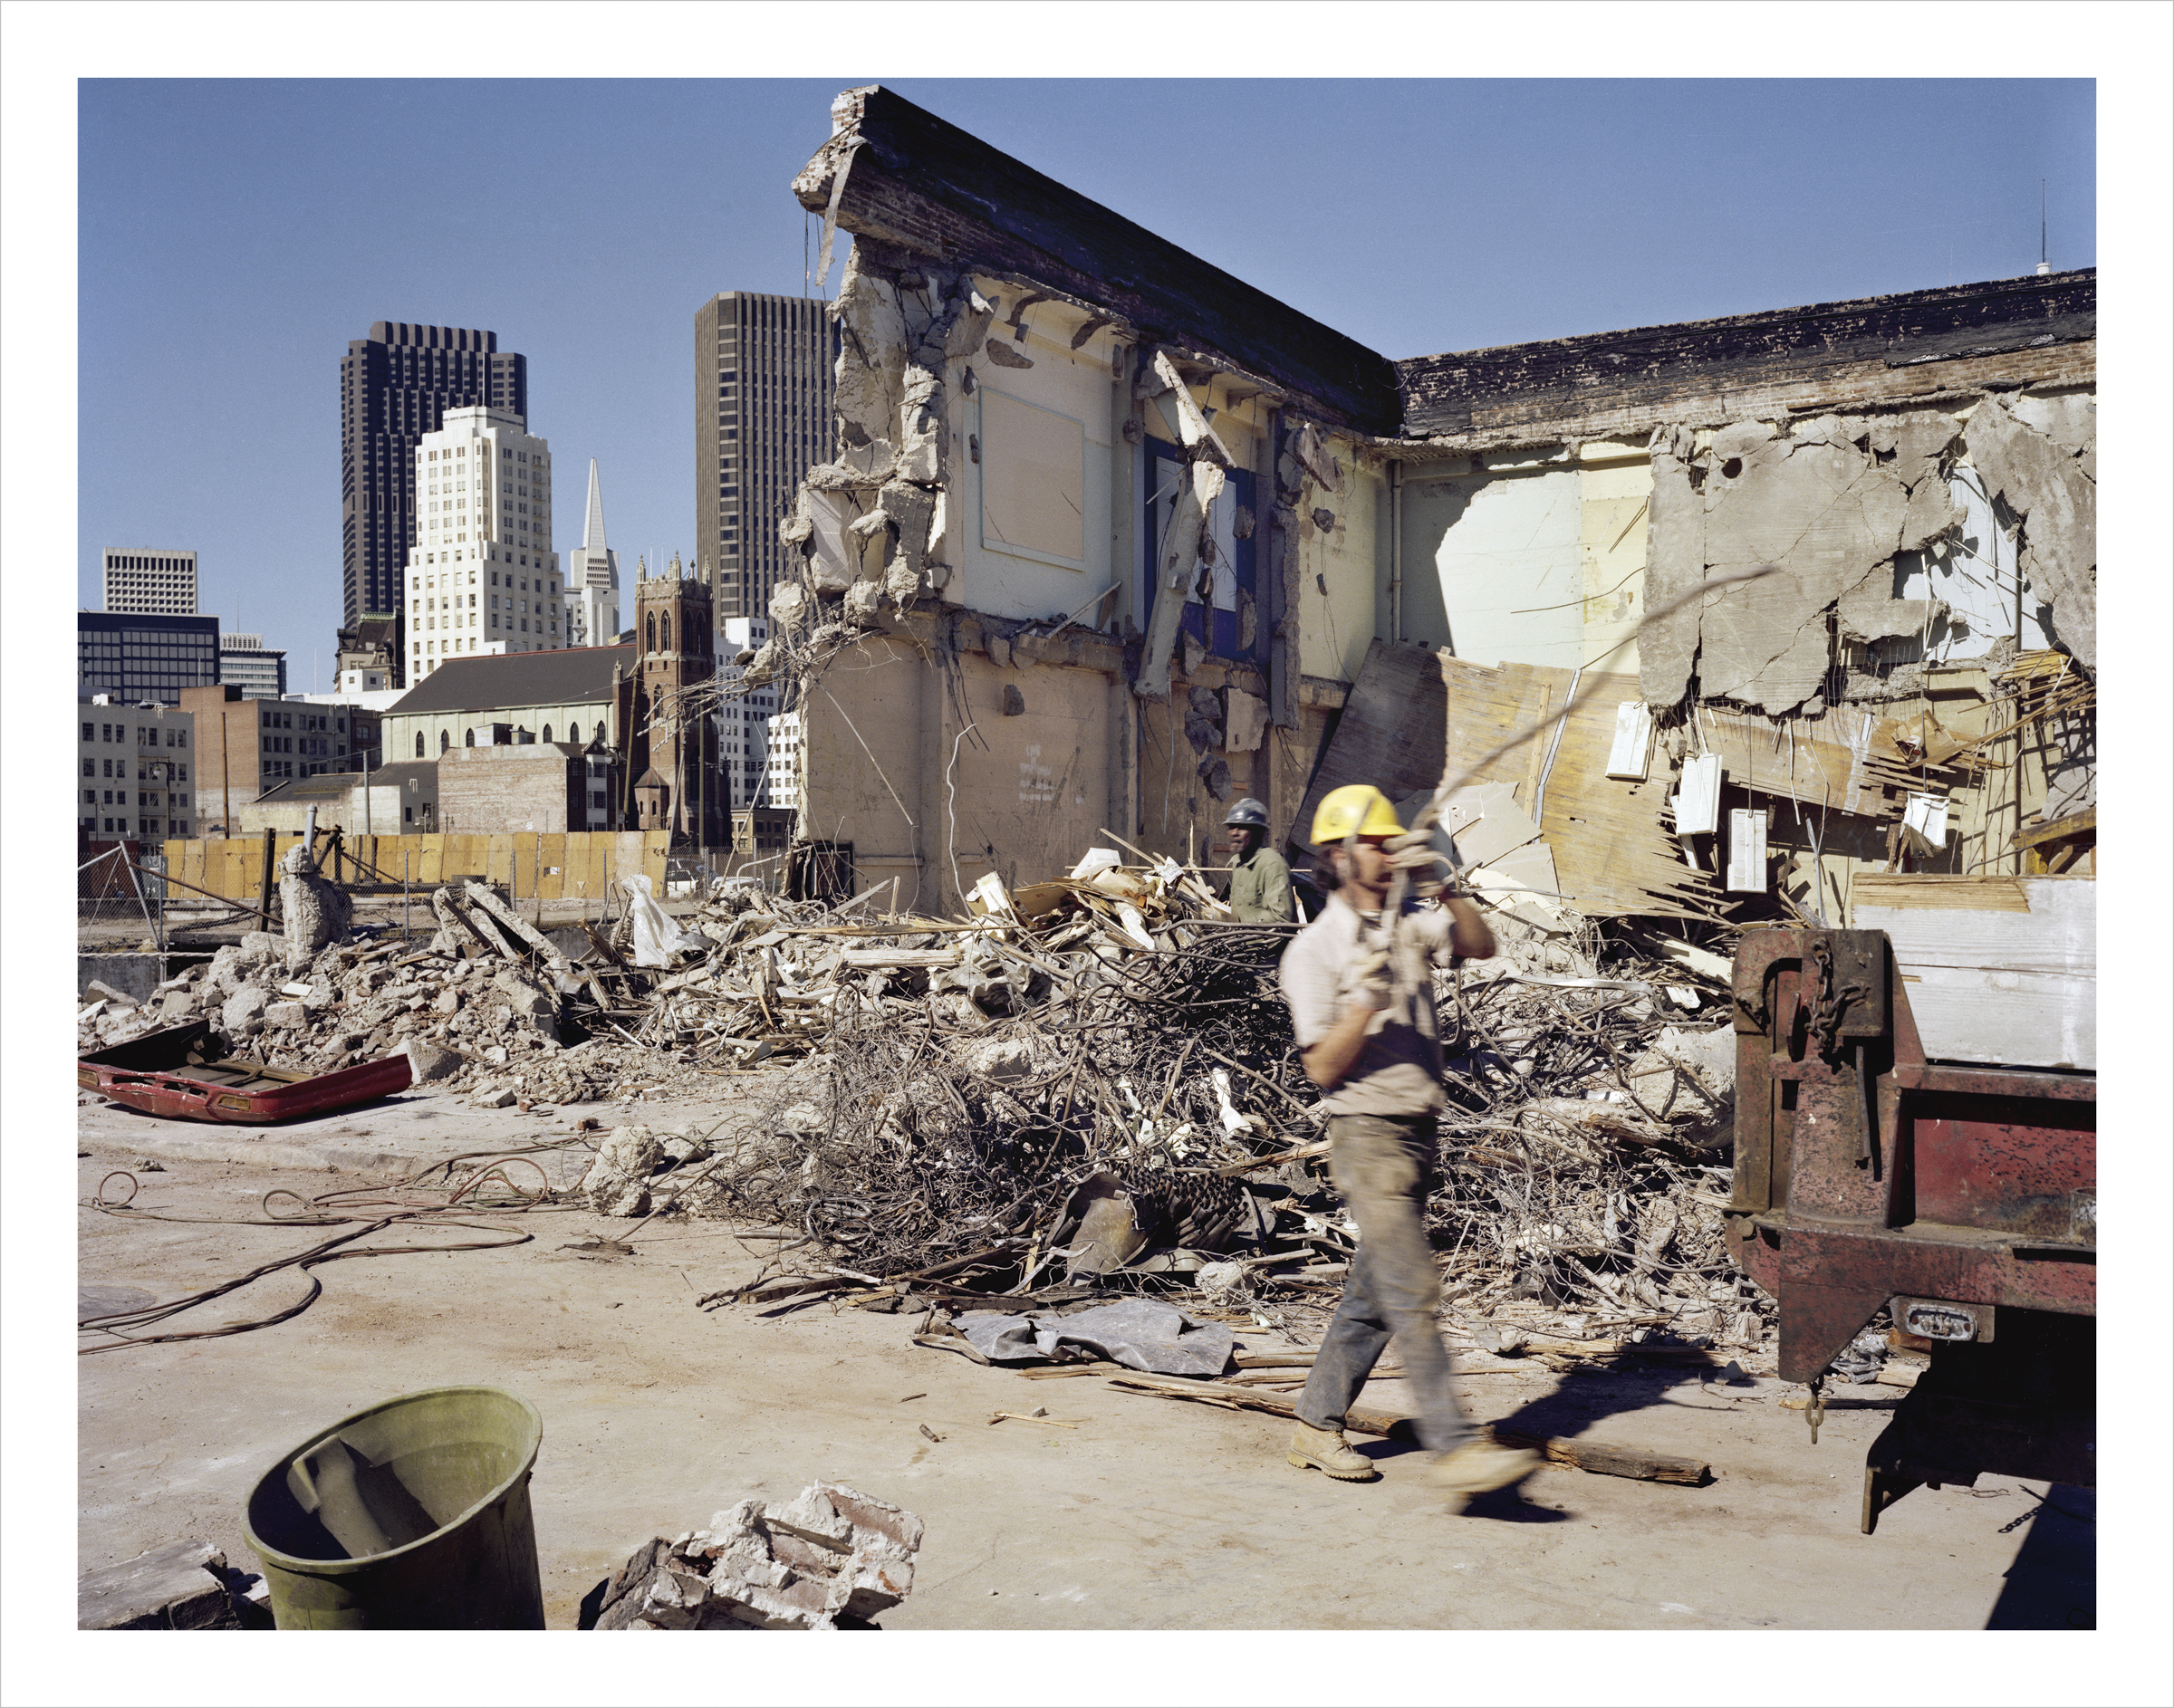 School Demolition, 4th at Howard Street, 1979 Archival Pigment Print, 2016 16 x 20 inches, edition of 5 20 x 24 inches, edition of 2 30 x 40 inches, edition of 2